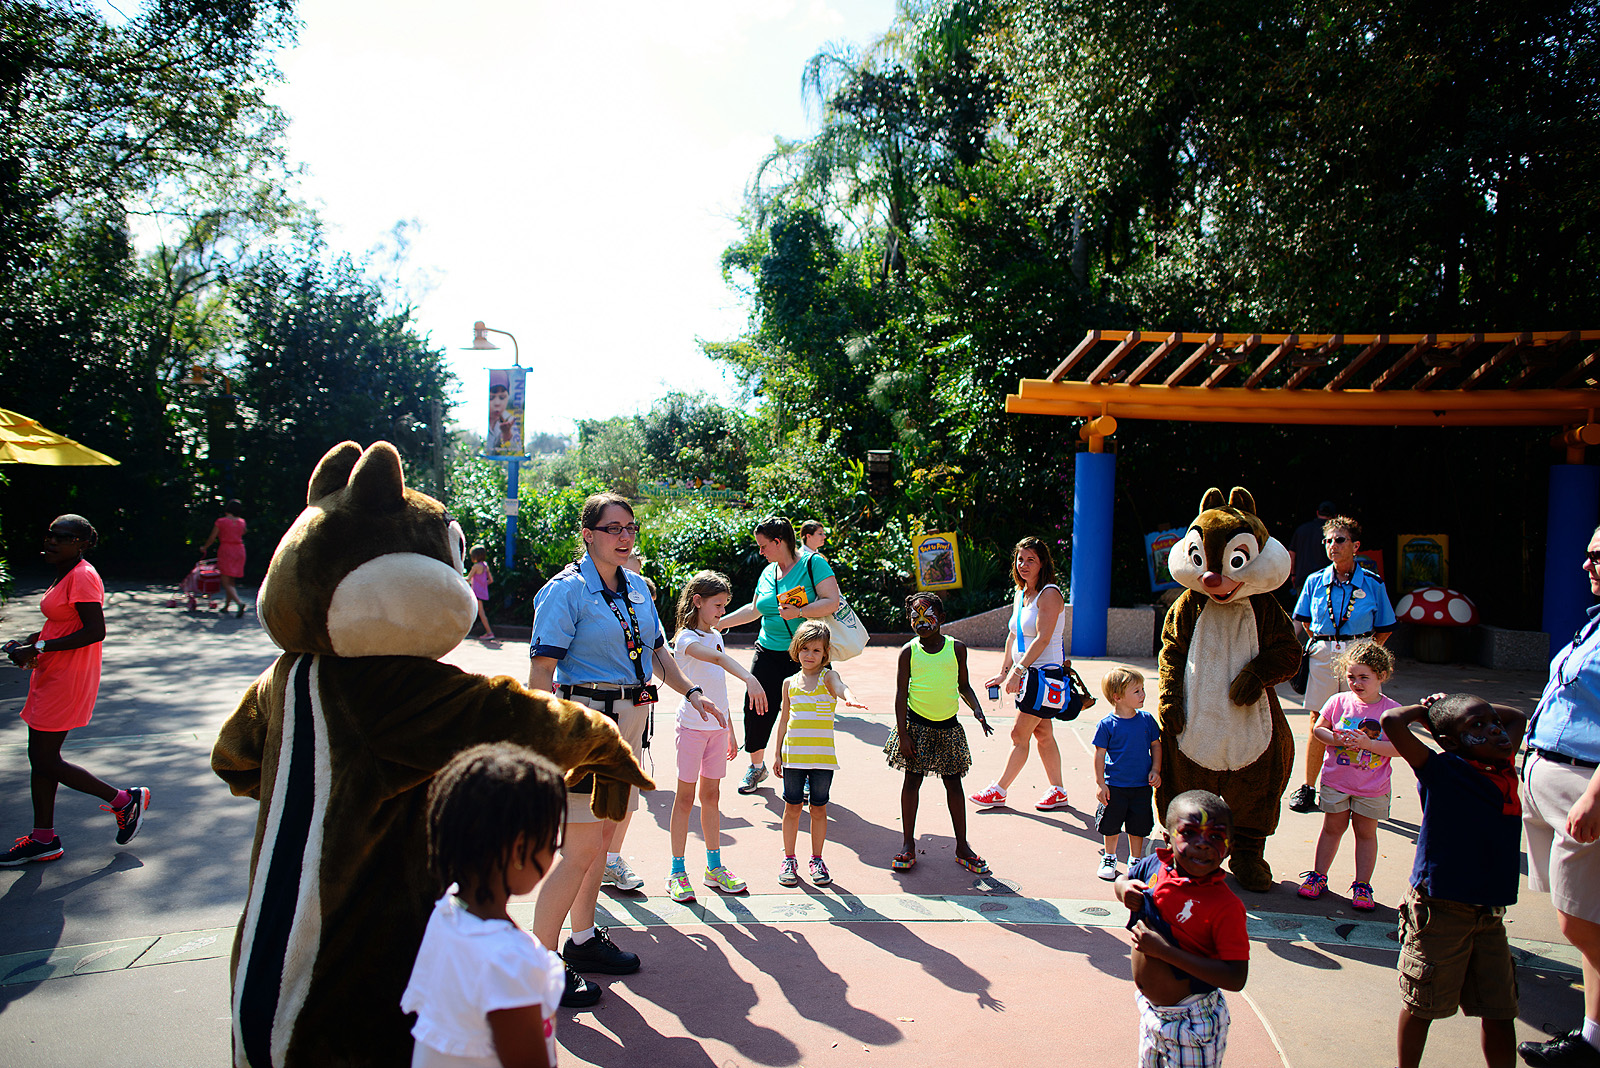 dance party and games with chip and dale